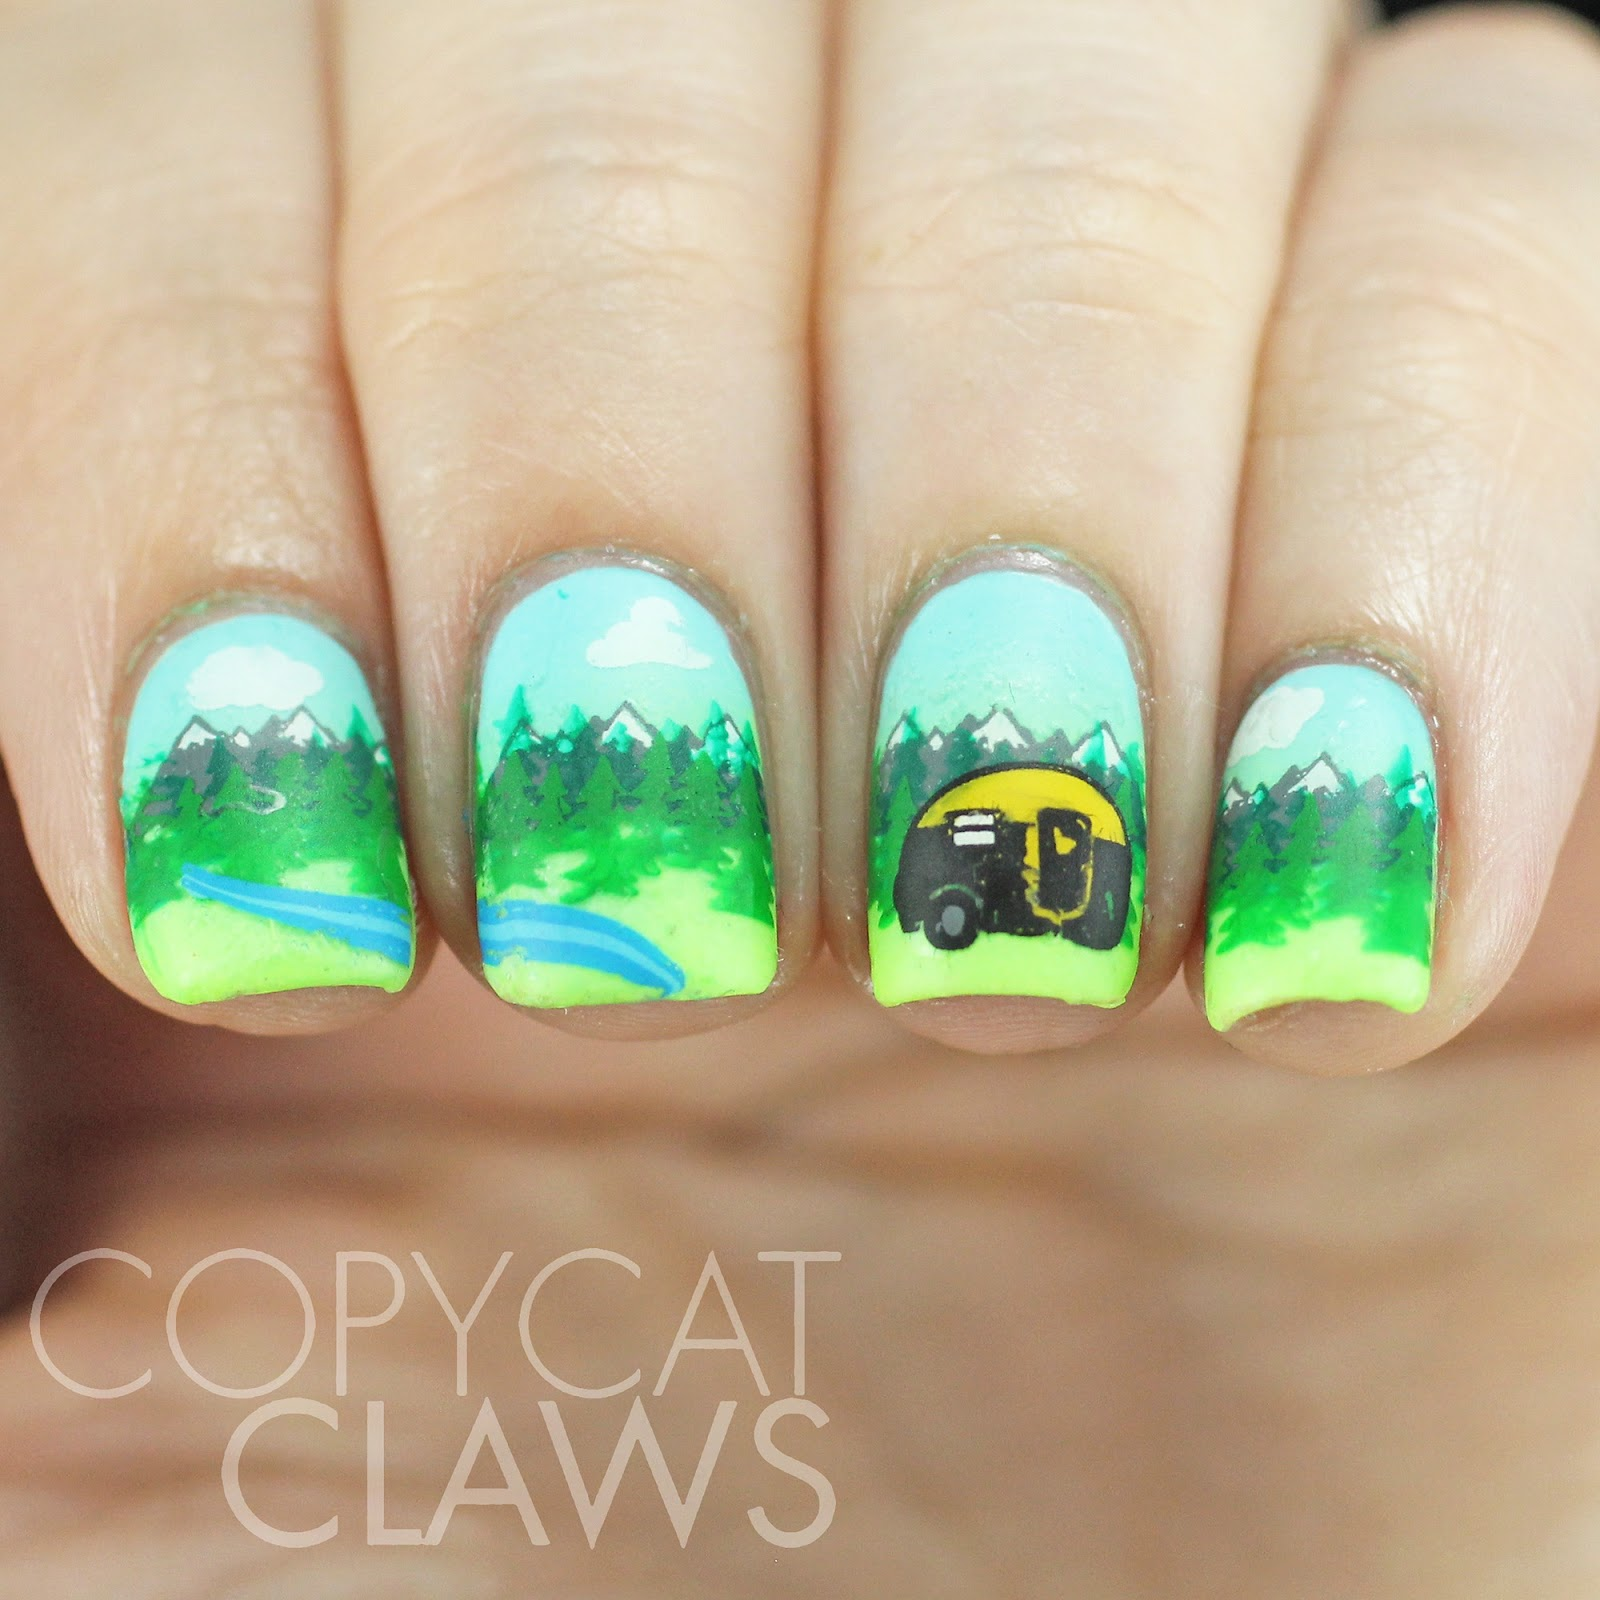 Copycat Claws: Camping Stamping Nails